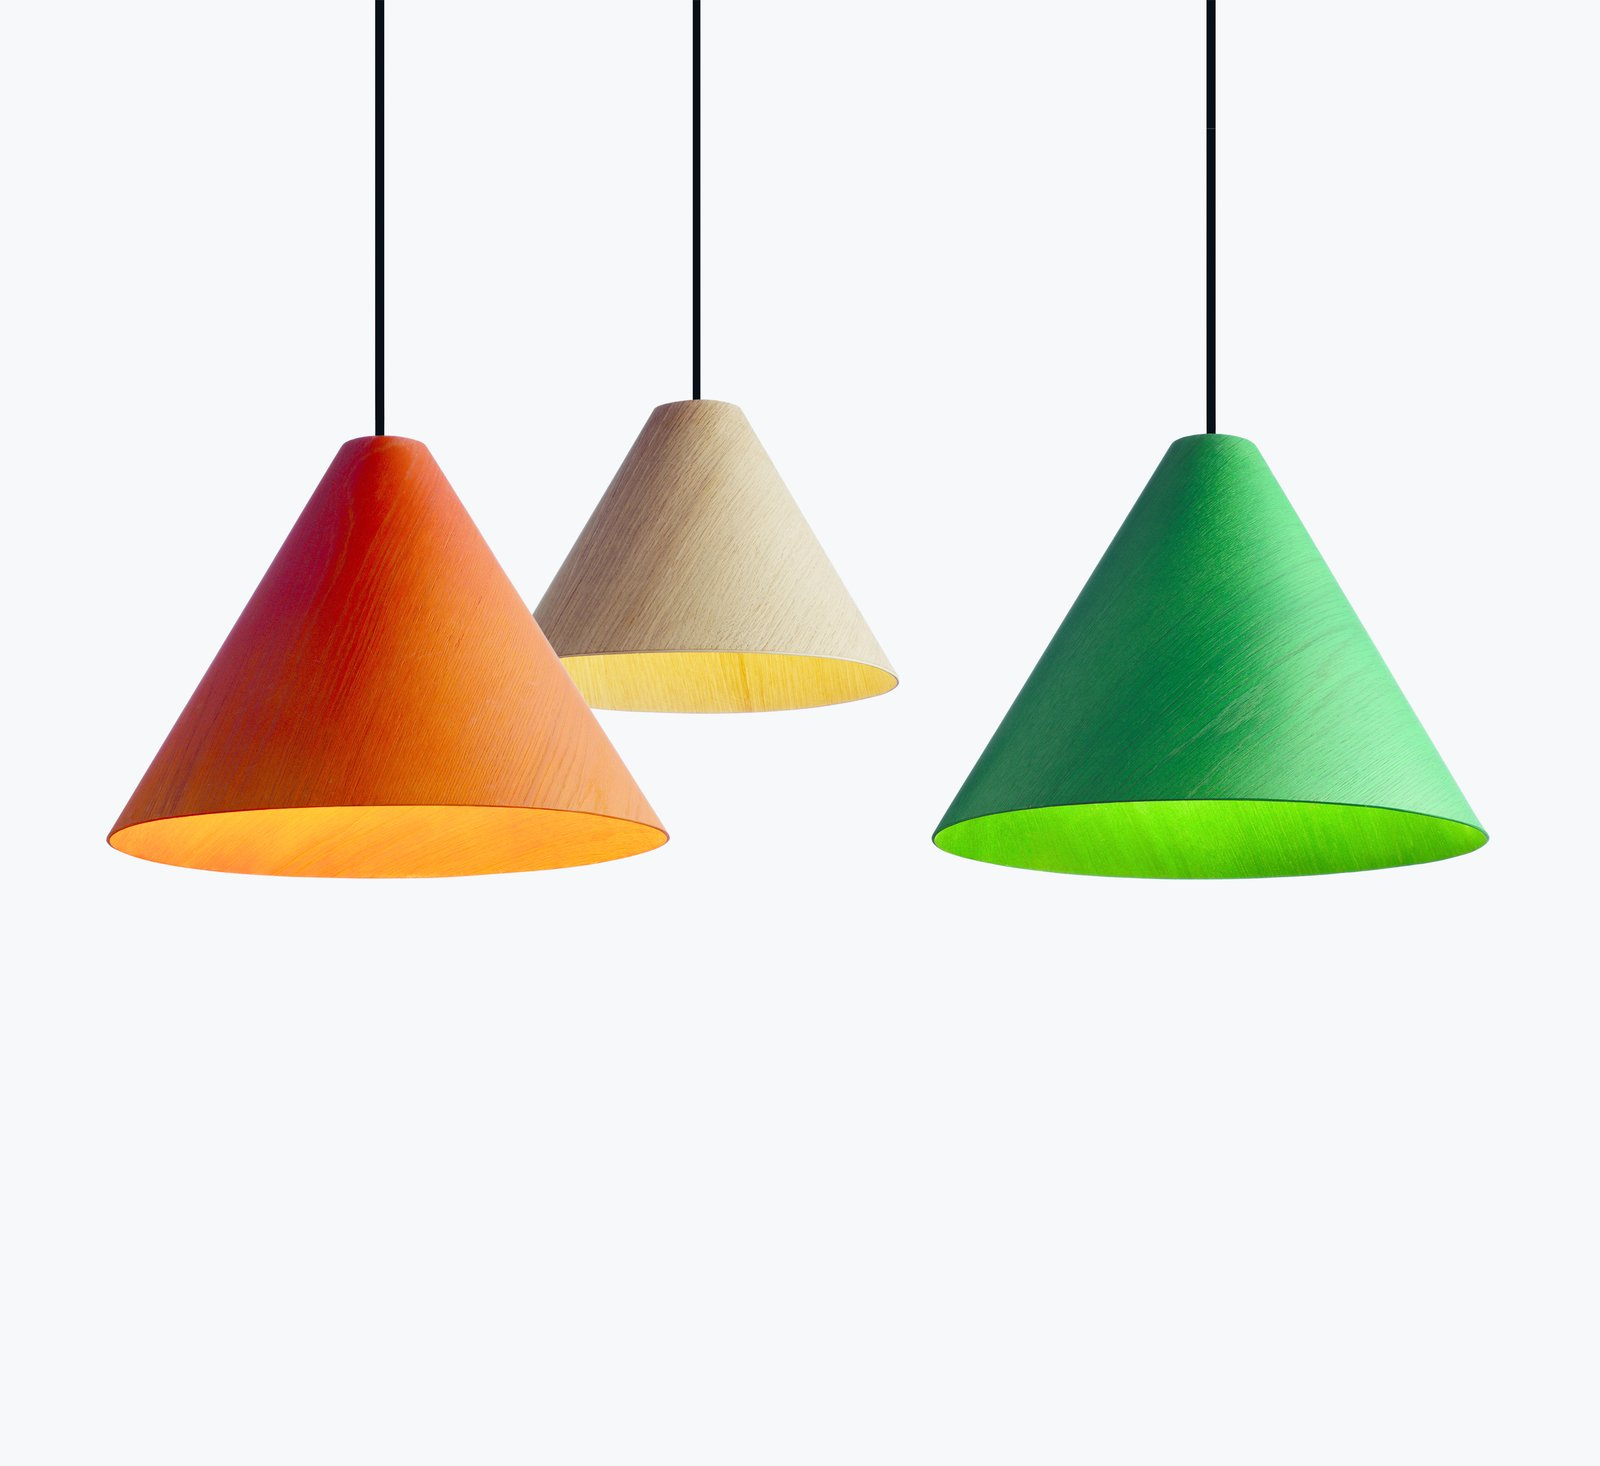 Milan saw the launch of wrong.london, an offshoot of HAY that's run by creative director Sebastian Wrong. The lighting-focused division released these veneered-oak lampshades, dubbed 30degree, among other designs.